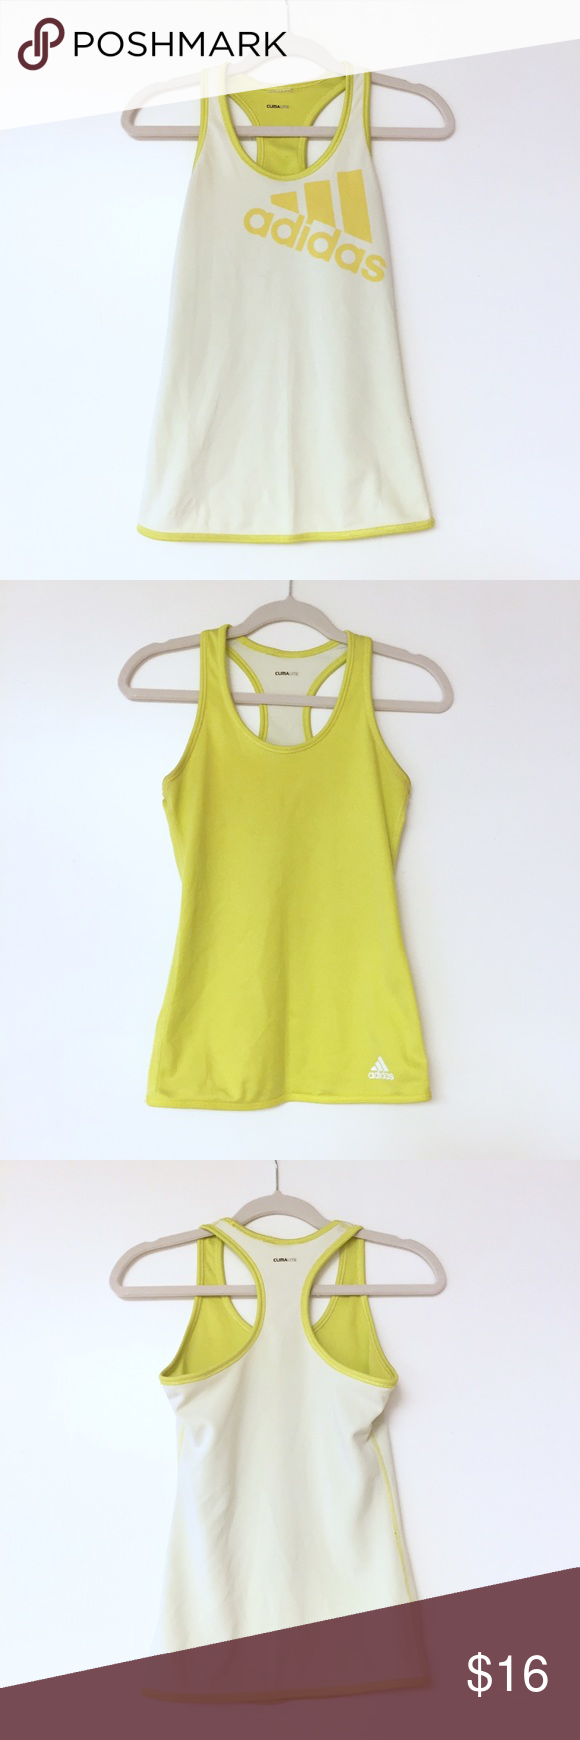 Adidas - Reversible Climalite Workout Tank Adidas reversible Climalite workout tank. Good condition. 💟 Offers welcome. 🙅🏻 No trades. 🎀 Bundle for discount. Adidas Tops Tank Tops